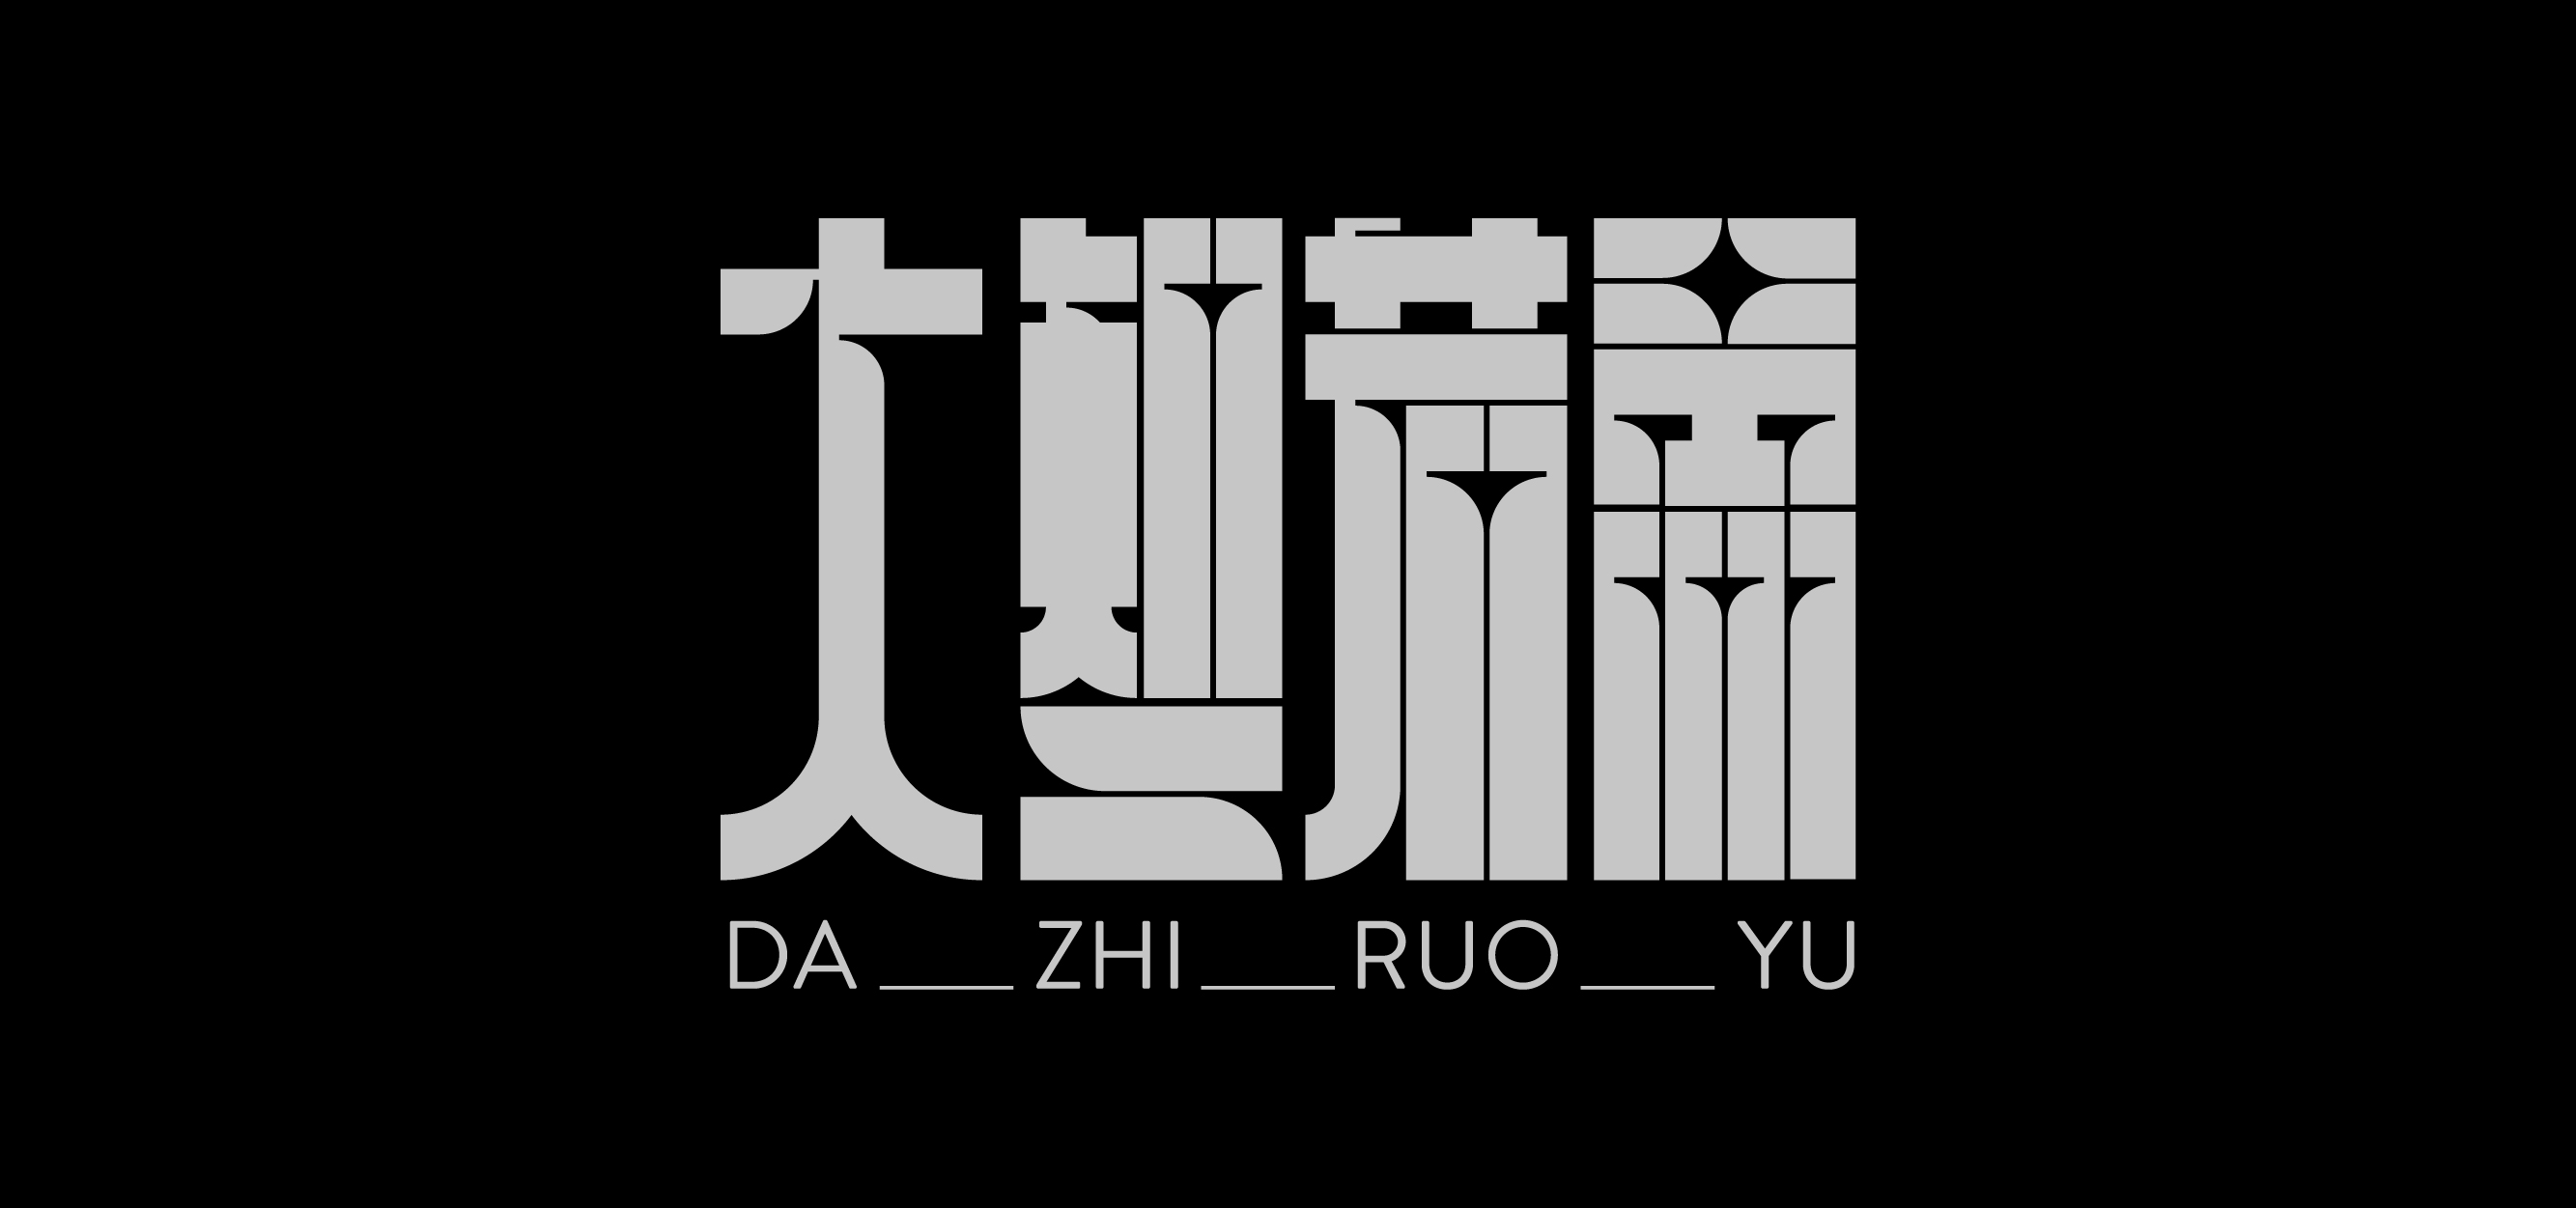 29P Collection of the latest Chinese font design schemes in 2021 #.604